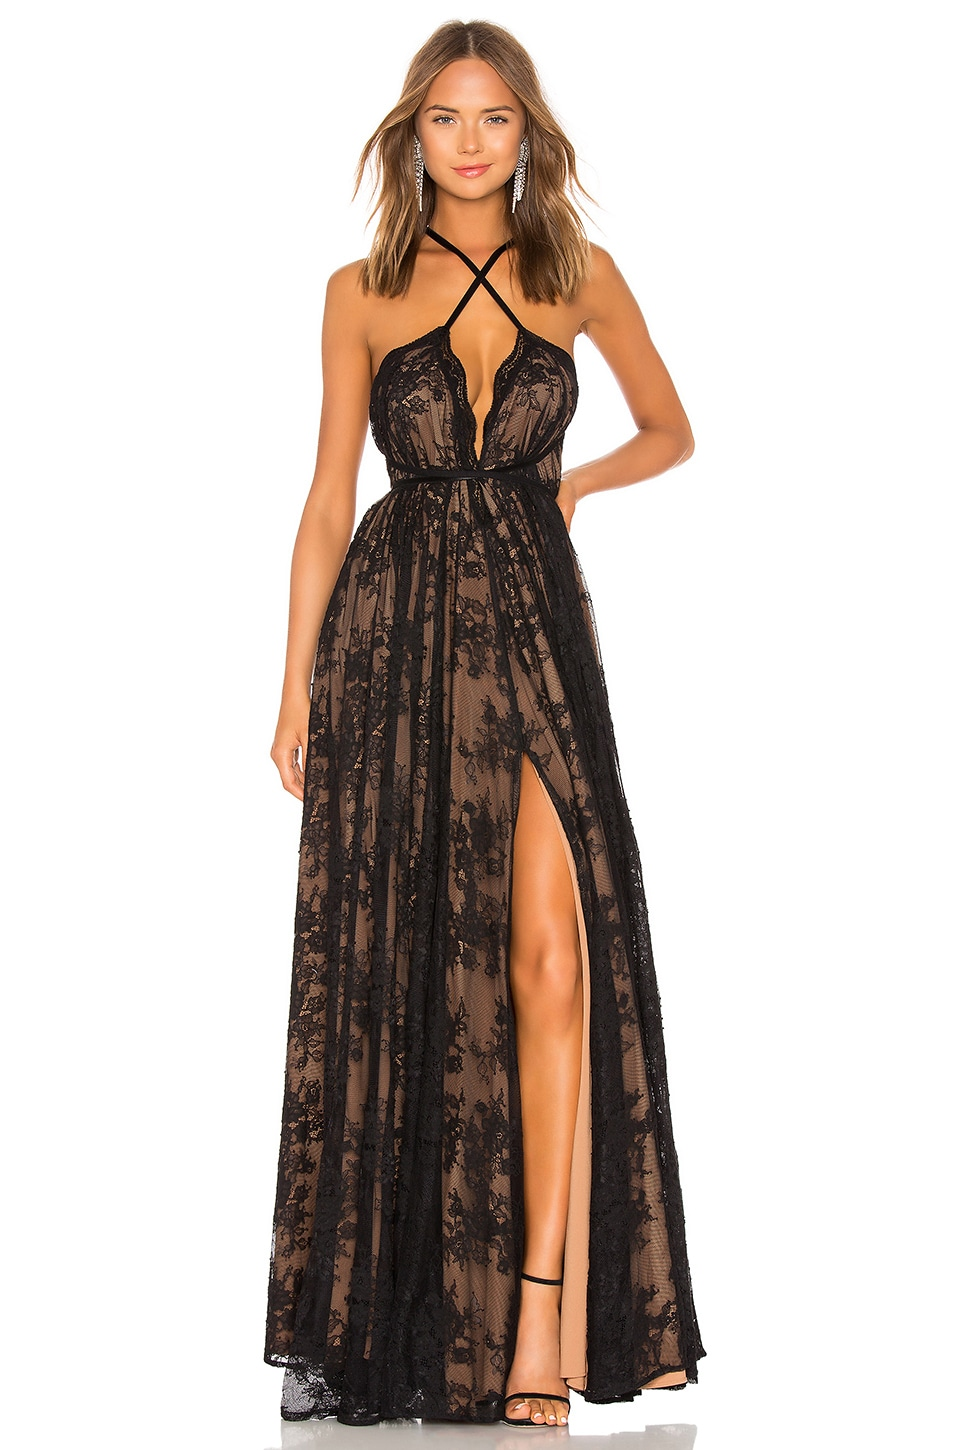 x REVOLVE Paris Gown, view 2, click to view large image.